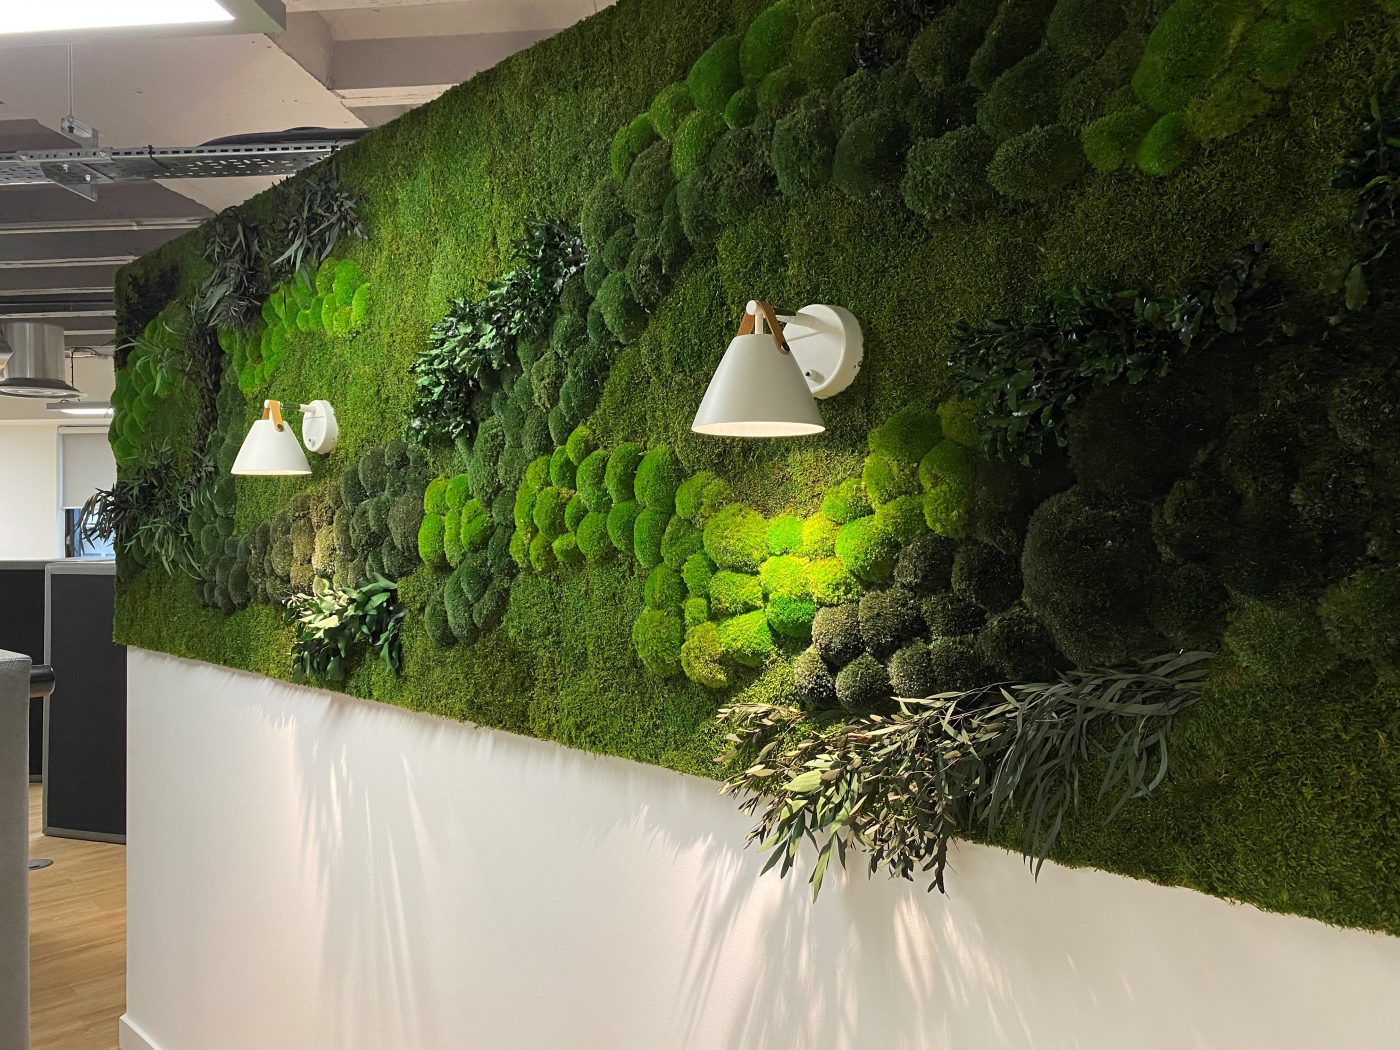 Innerspace Cheshire - Green Wall - Foliage - Plants